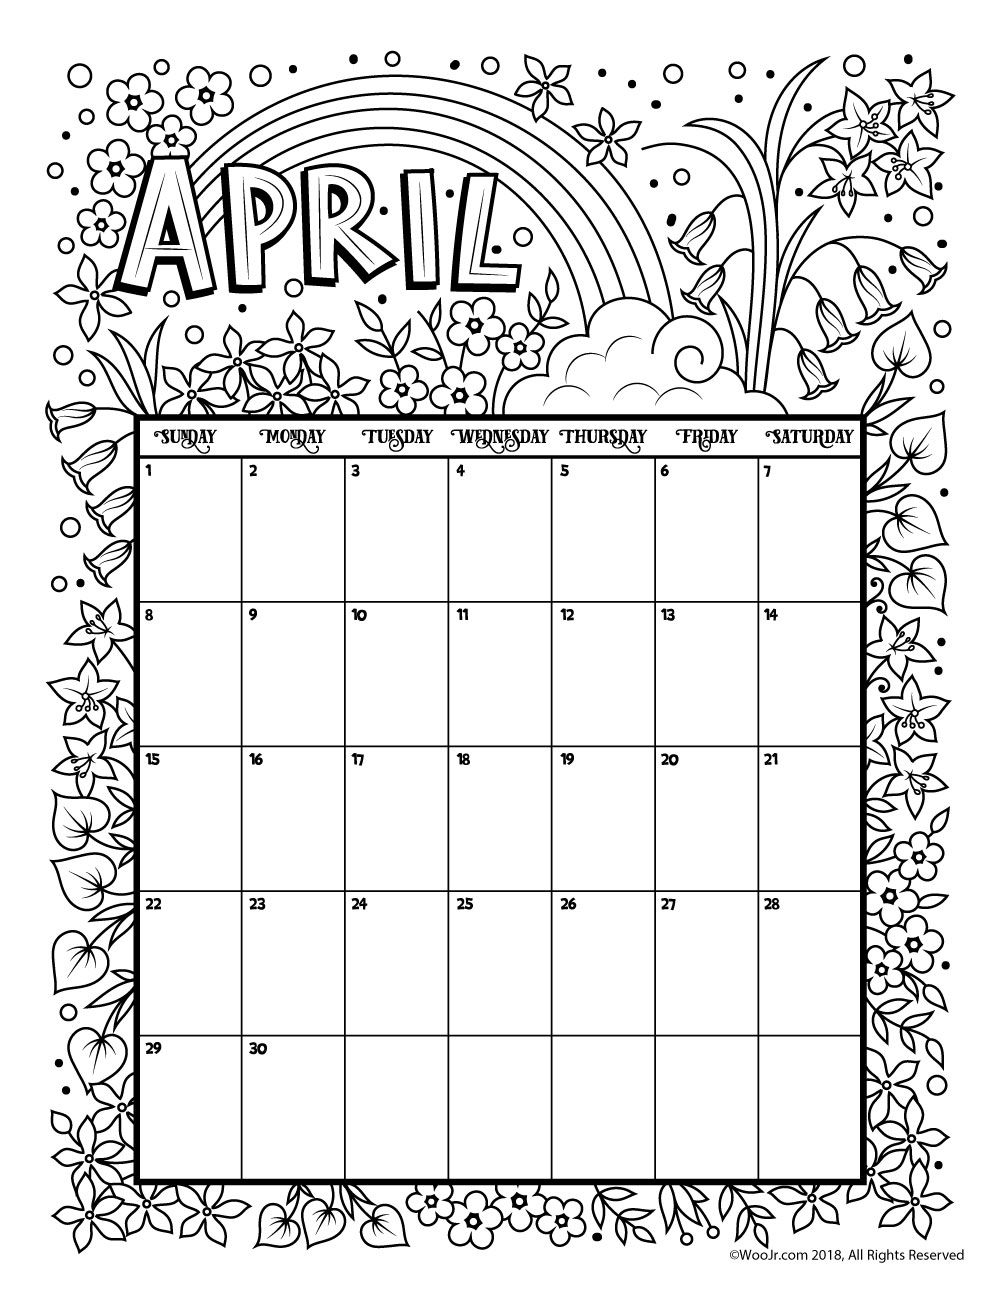 Free Printable Coloring Calendar 2019 With For And 2018 Holiday Happiness